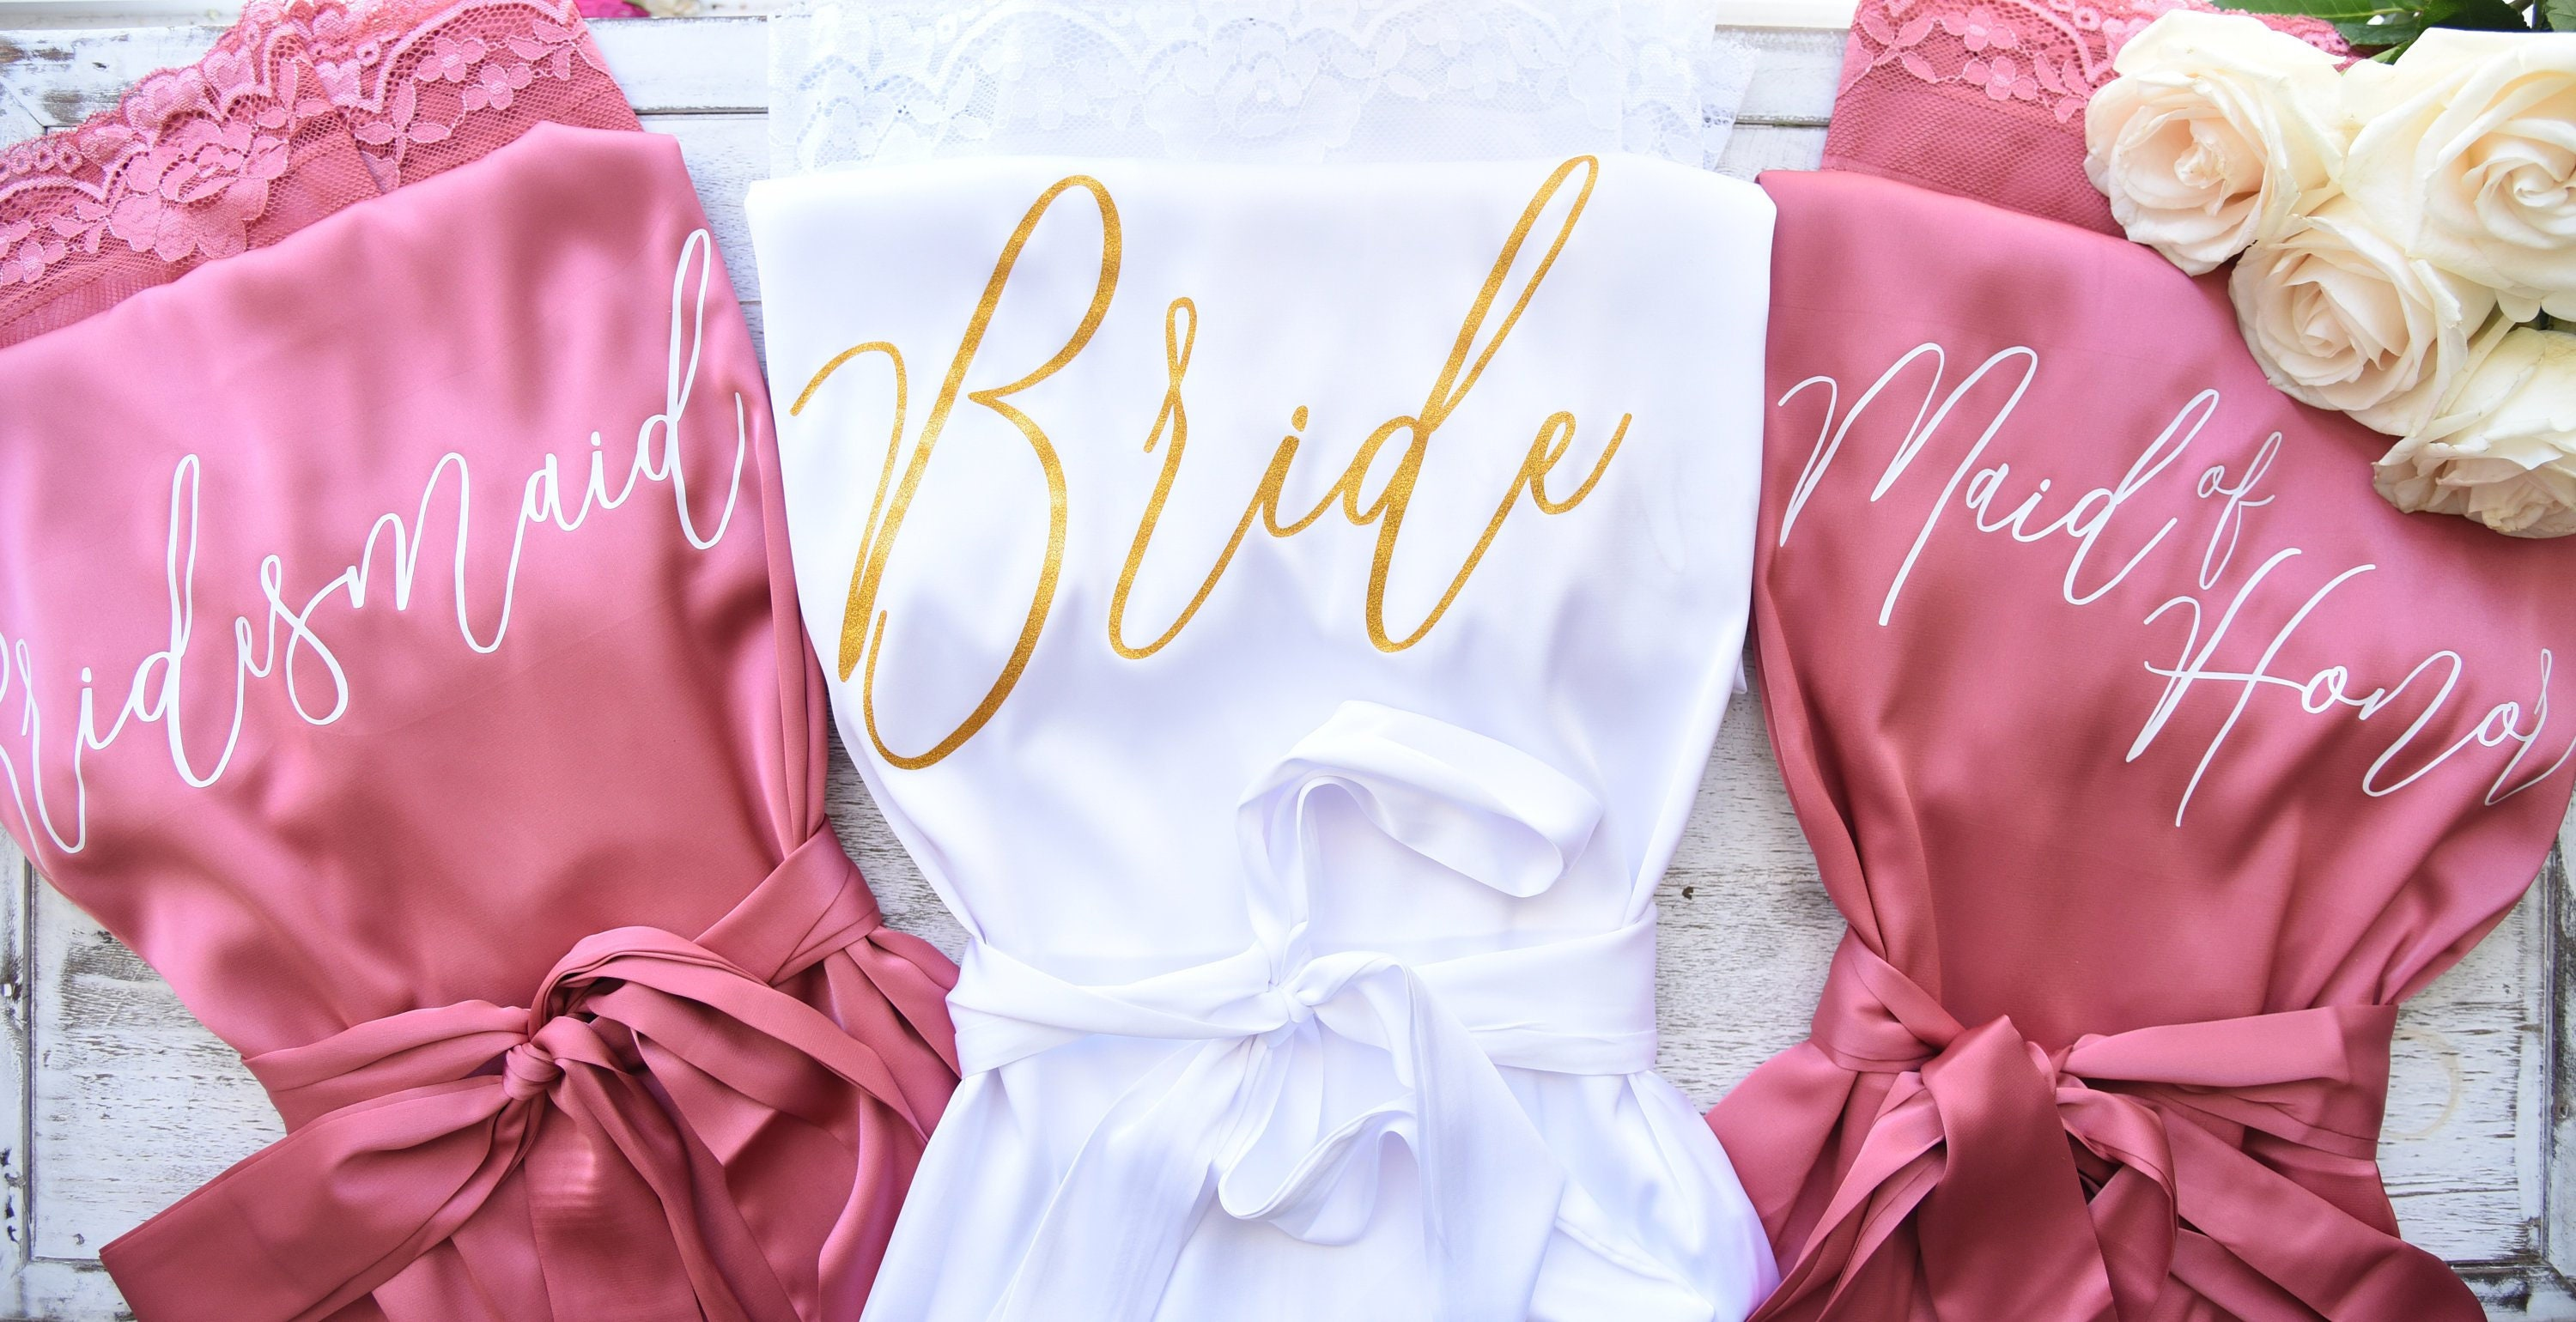 Bridesmaid Robes//Flower Girl//Satin Lace Robe//Bridal Squad//Bridesmaid Gift//Personalized Bridesmaid Maid of Honor Wedding Robes